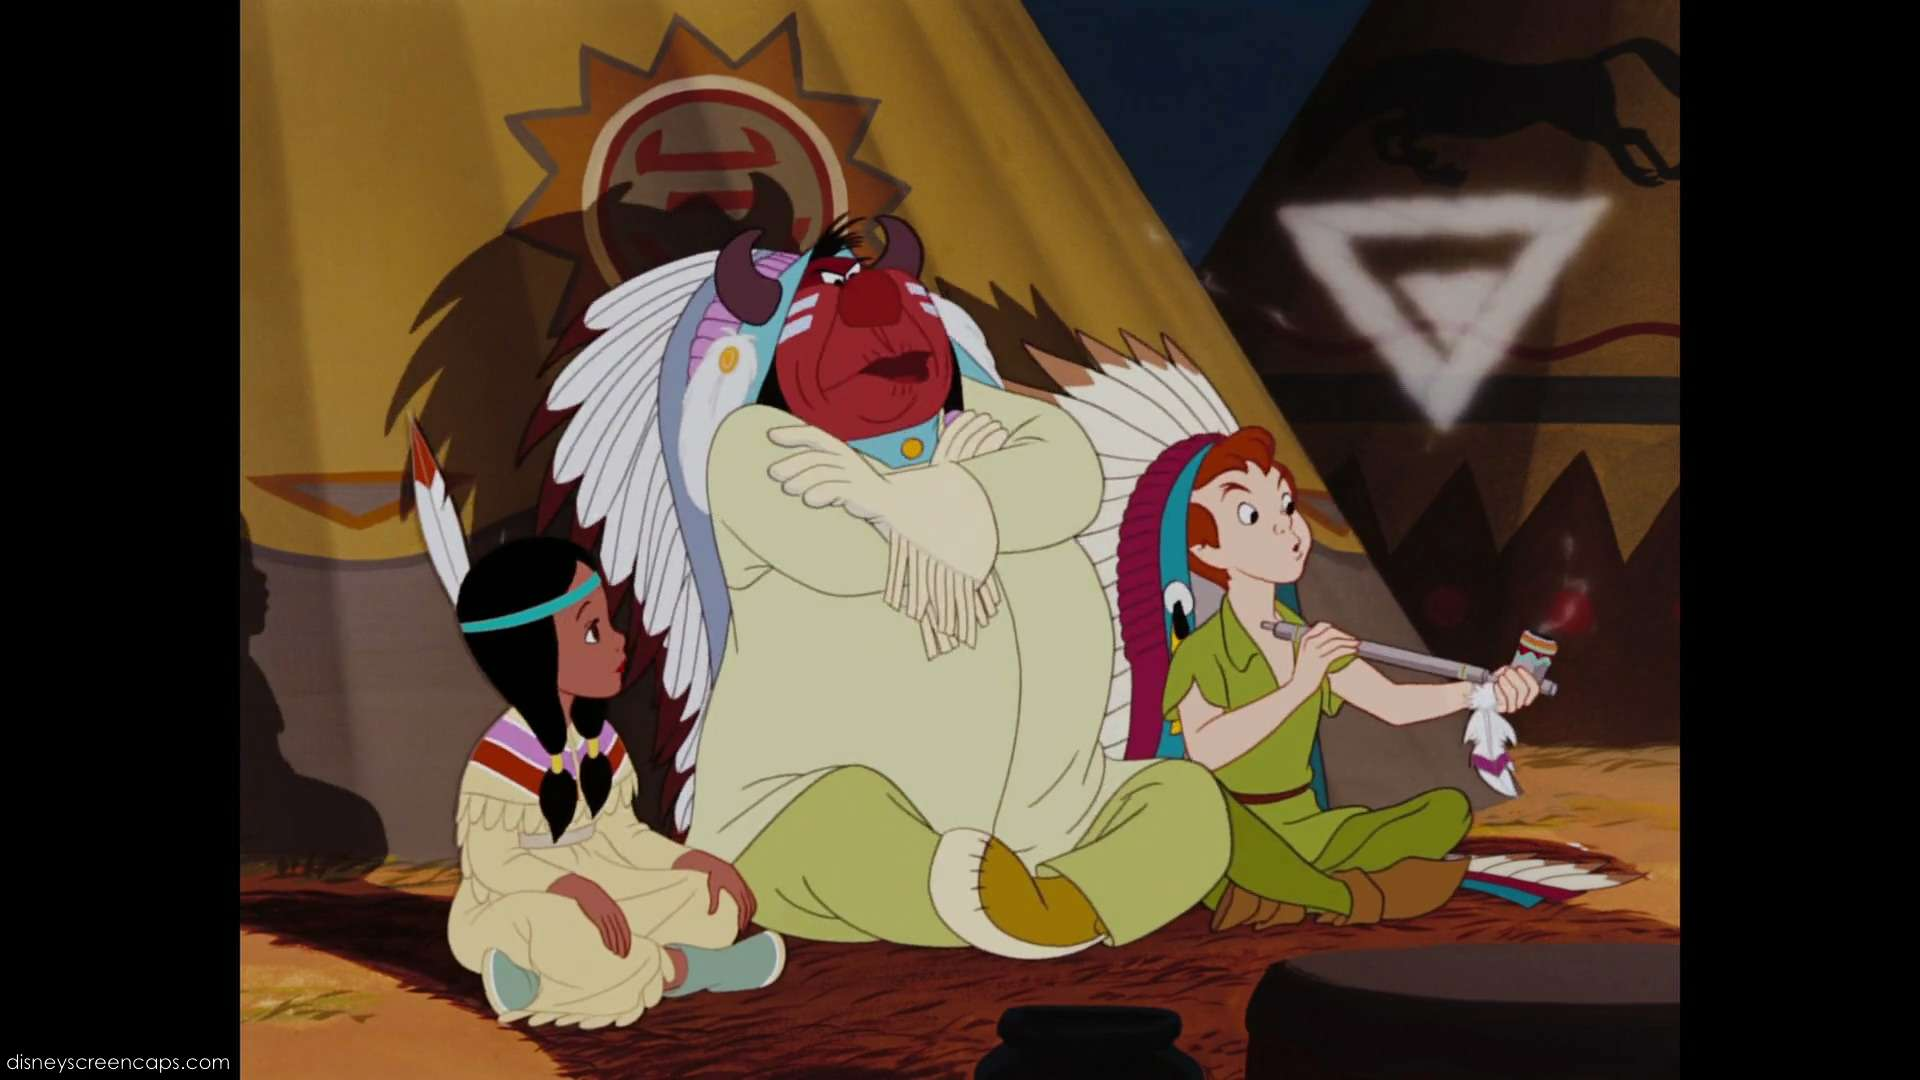 racial stereotypes in disney movies Recently i have been doing research on modern movies for a class, and i have loved reading about all of the stereotypes and counter-stereotypes for in disney films frozen is a great counter-stereotypical movie.